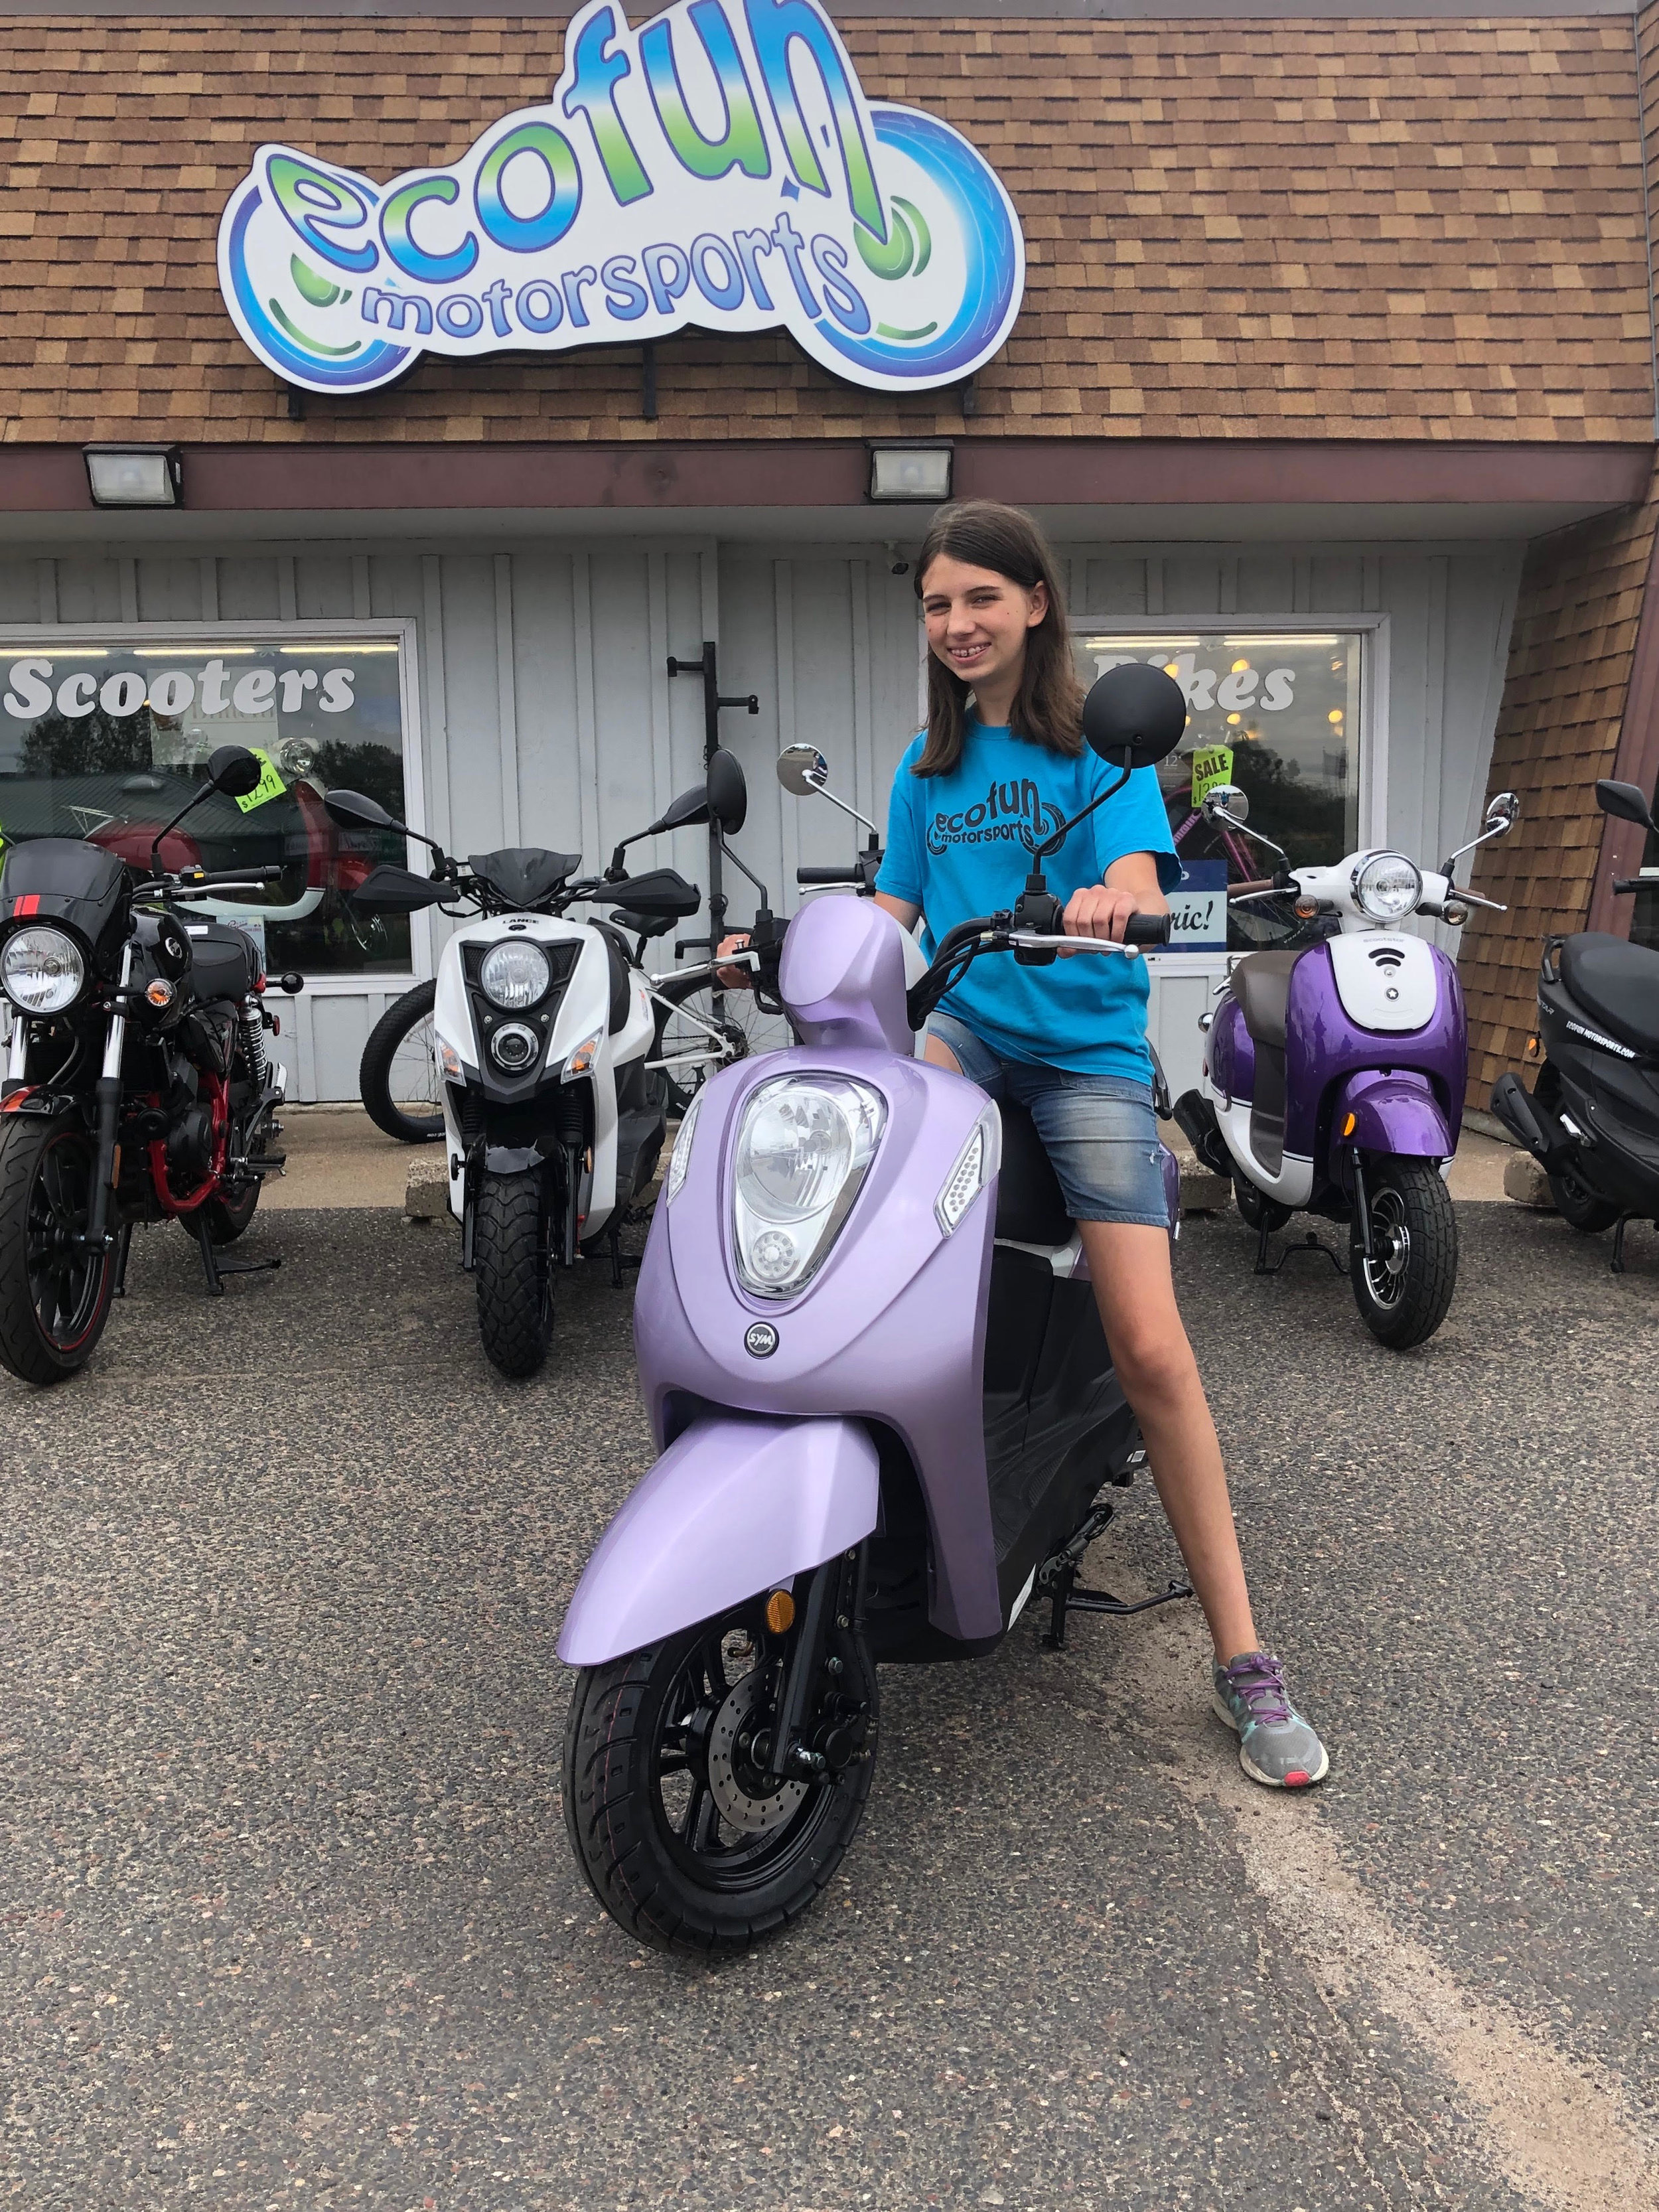 Kalyn - Sales - Kalyn is a Sales Associate who specializes in ebikes! Her favorite scooter is the Purple SYM Mio. On her free time she loves to ride her own Bintelli Beach Bike and plays volleyball for her high school.